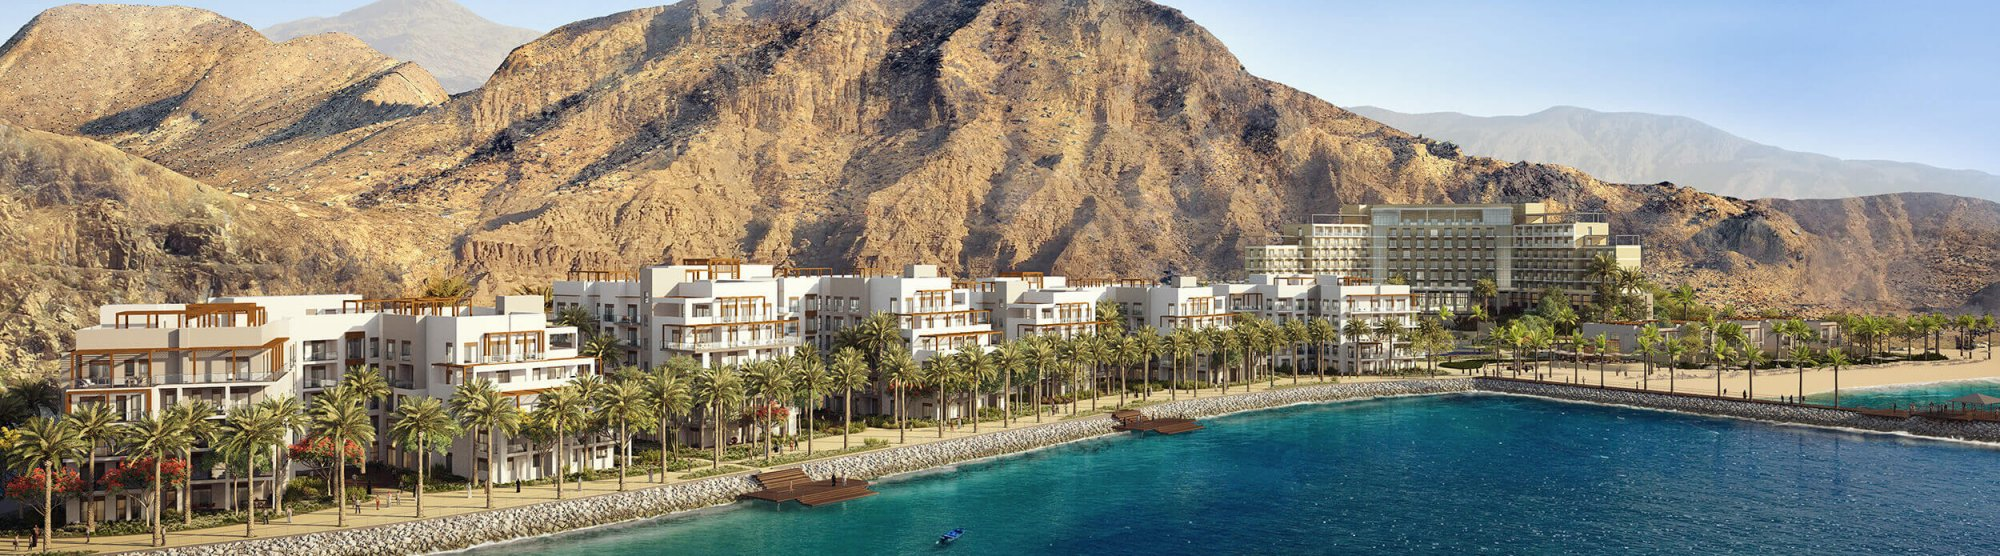 Fujairah represents one of the UAE's most diverse natural environment